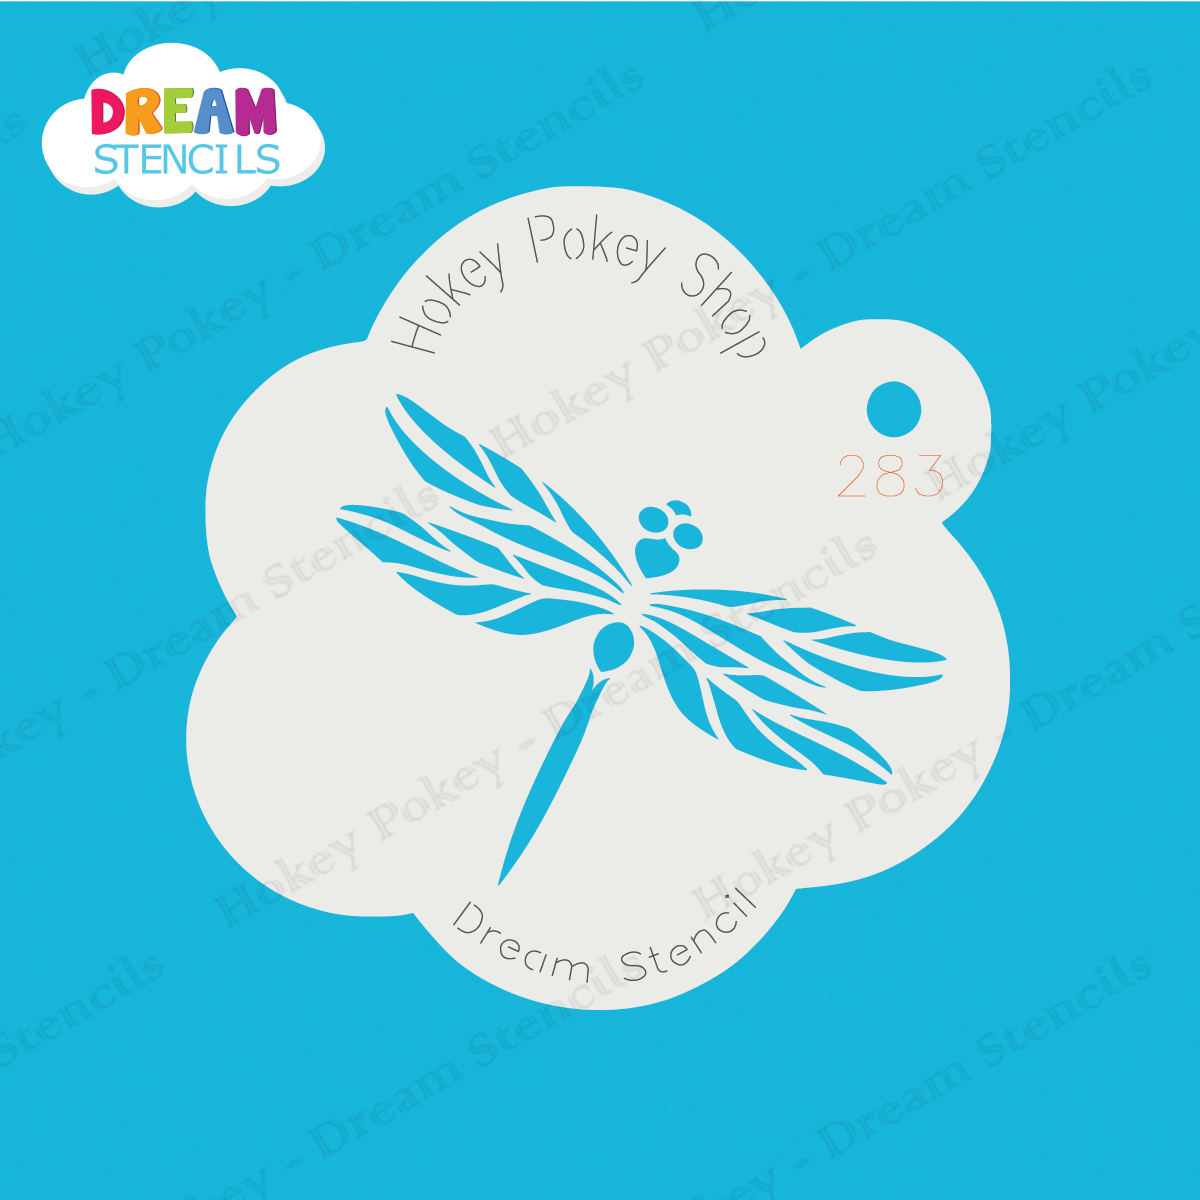 Picture of Fancy Dragonfly Dream Stencil - 283